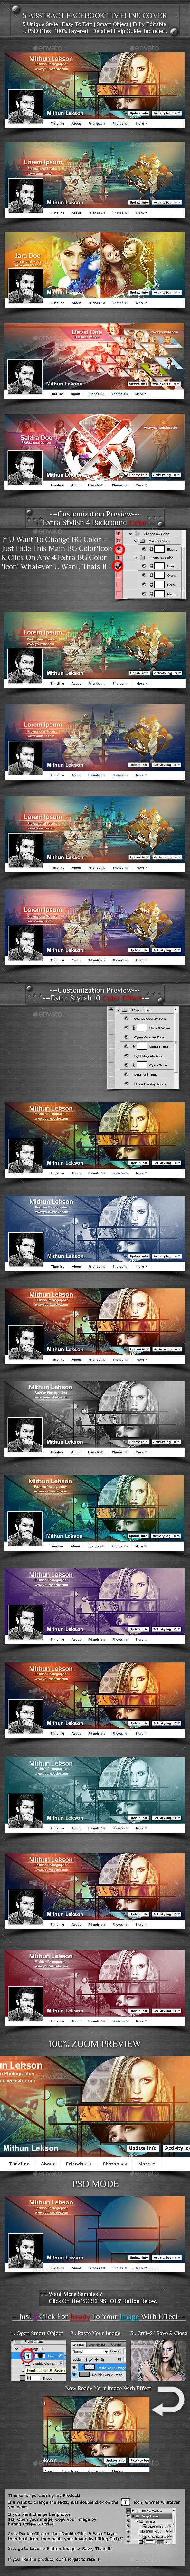 5 Abstract Facebook Timeline Cover - Facebook Timeline Covers Social Media